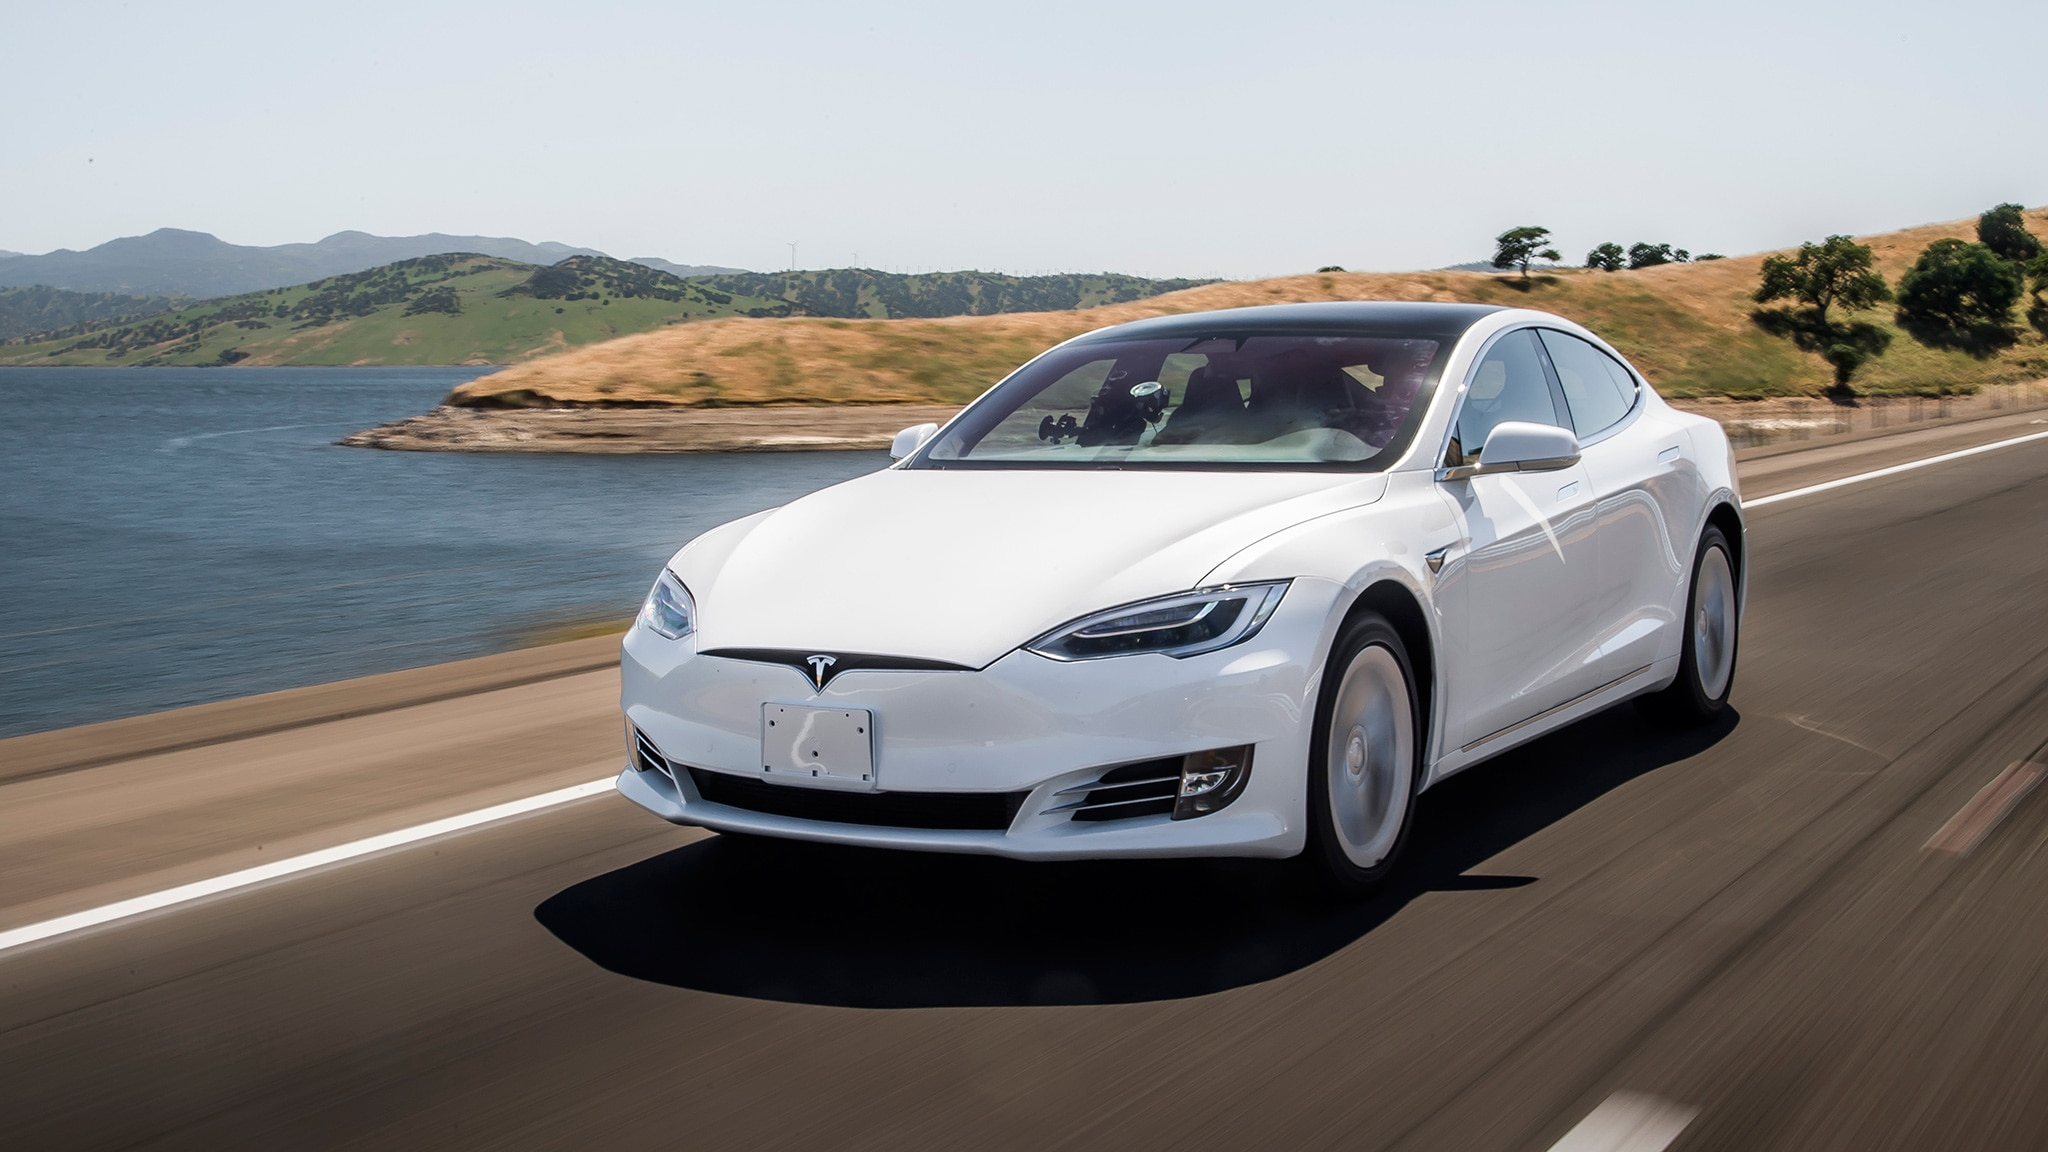 Tesla's Model S and Model X get new motors with more range